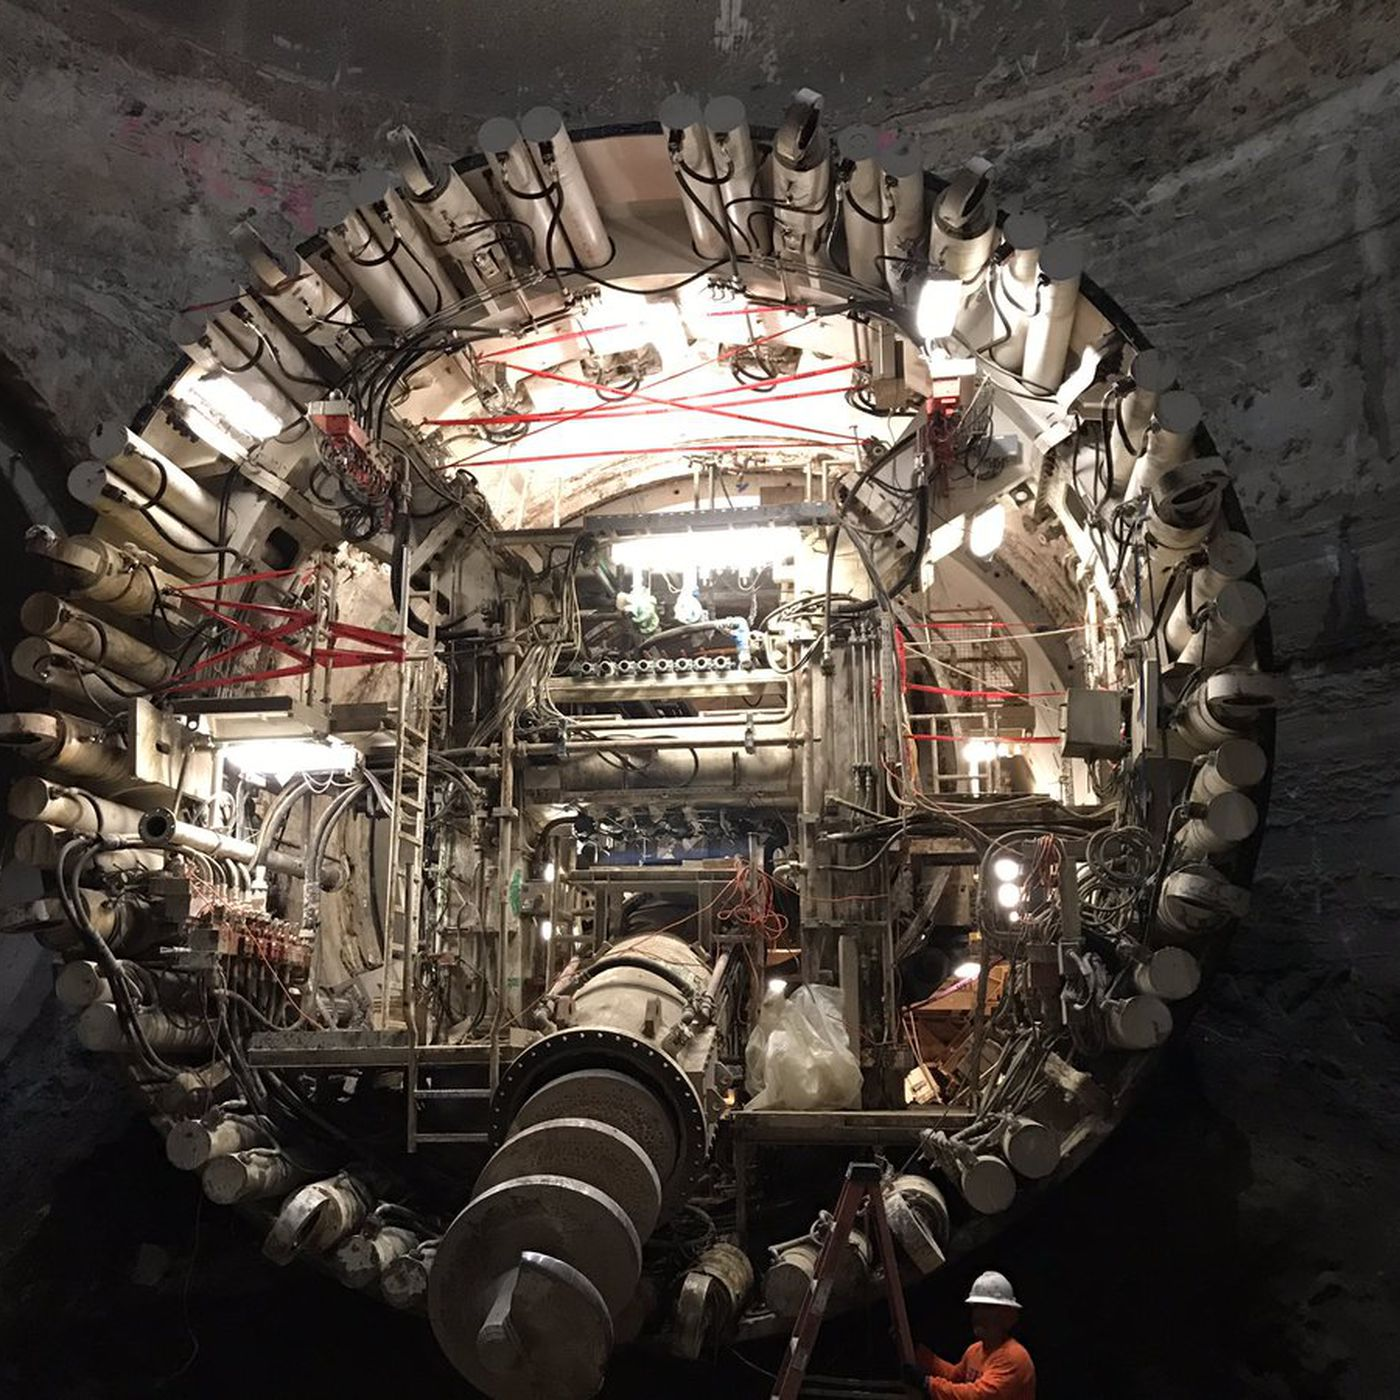 Elon Musk's midlife crisis is a tunneling machine named after the